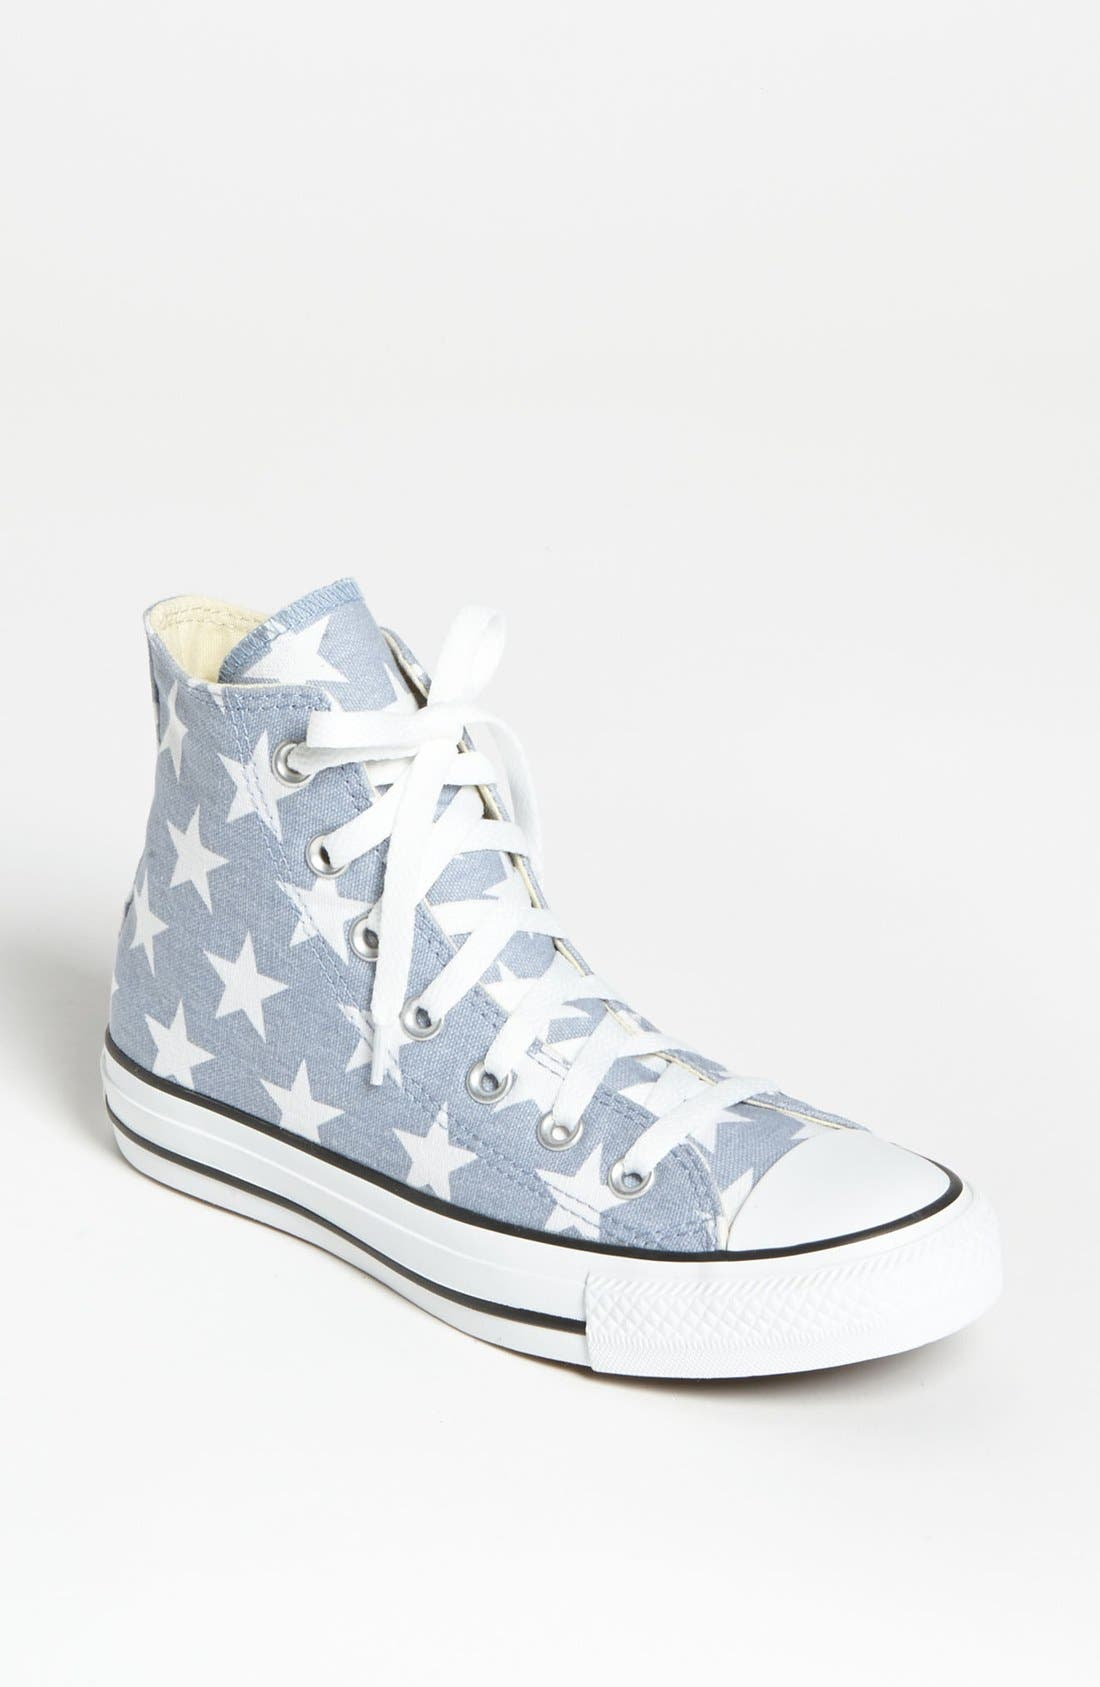 Alternate Image 1 Selected - Converse Chuck Taylor® All Star® Stars High Top Sneaker (Women)